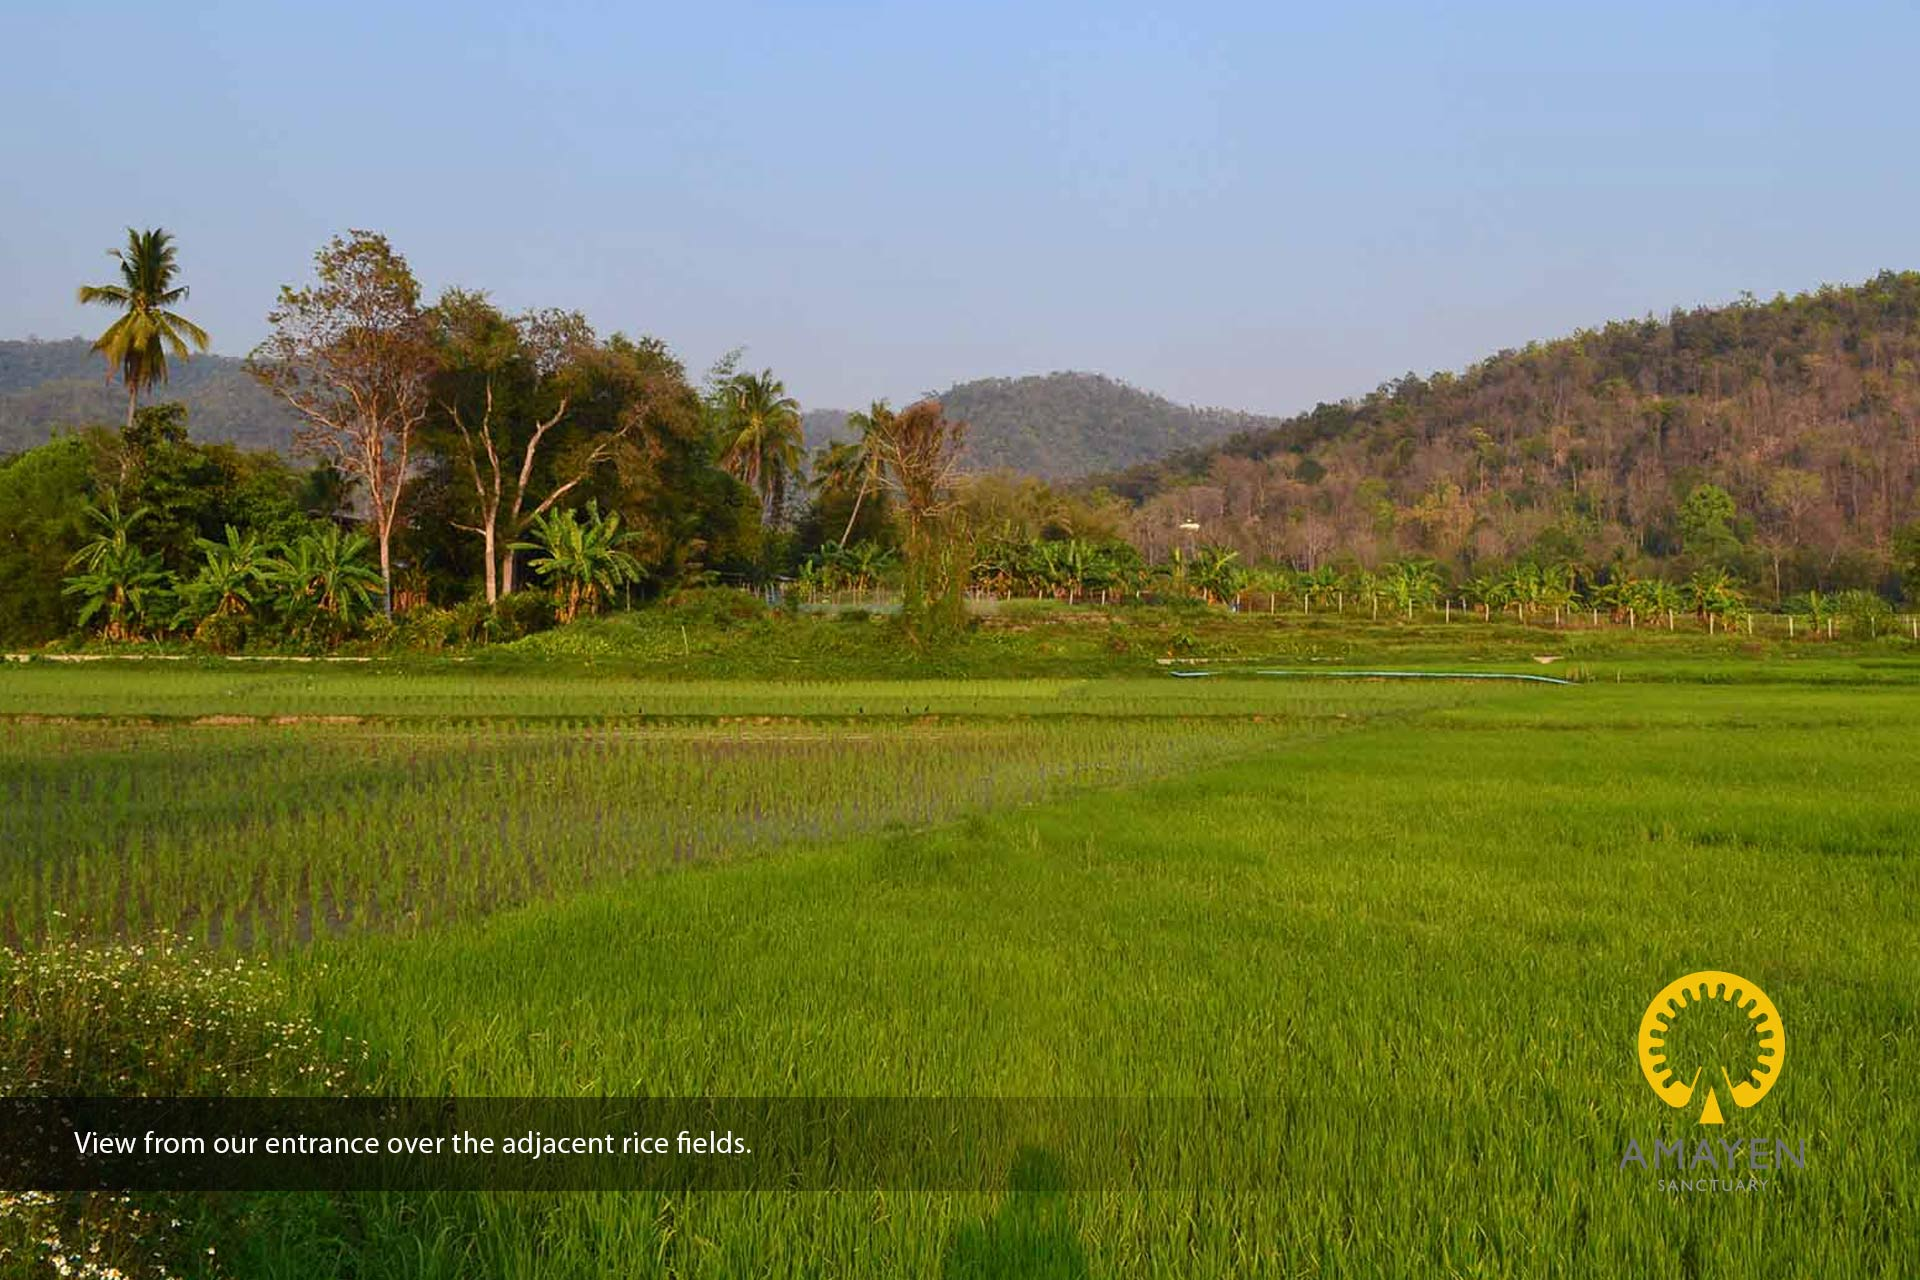 rice-fields-yoga-meditation-retreat-chiang-mai-thailand-2019